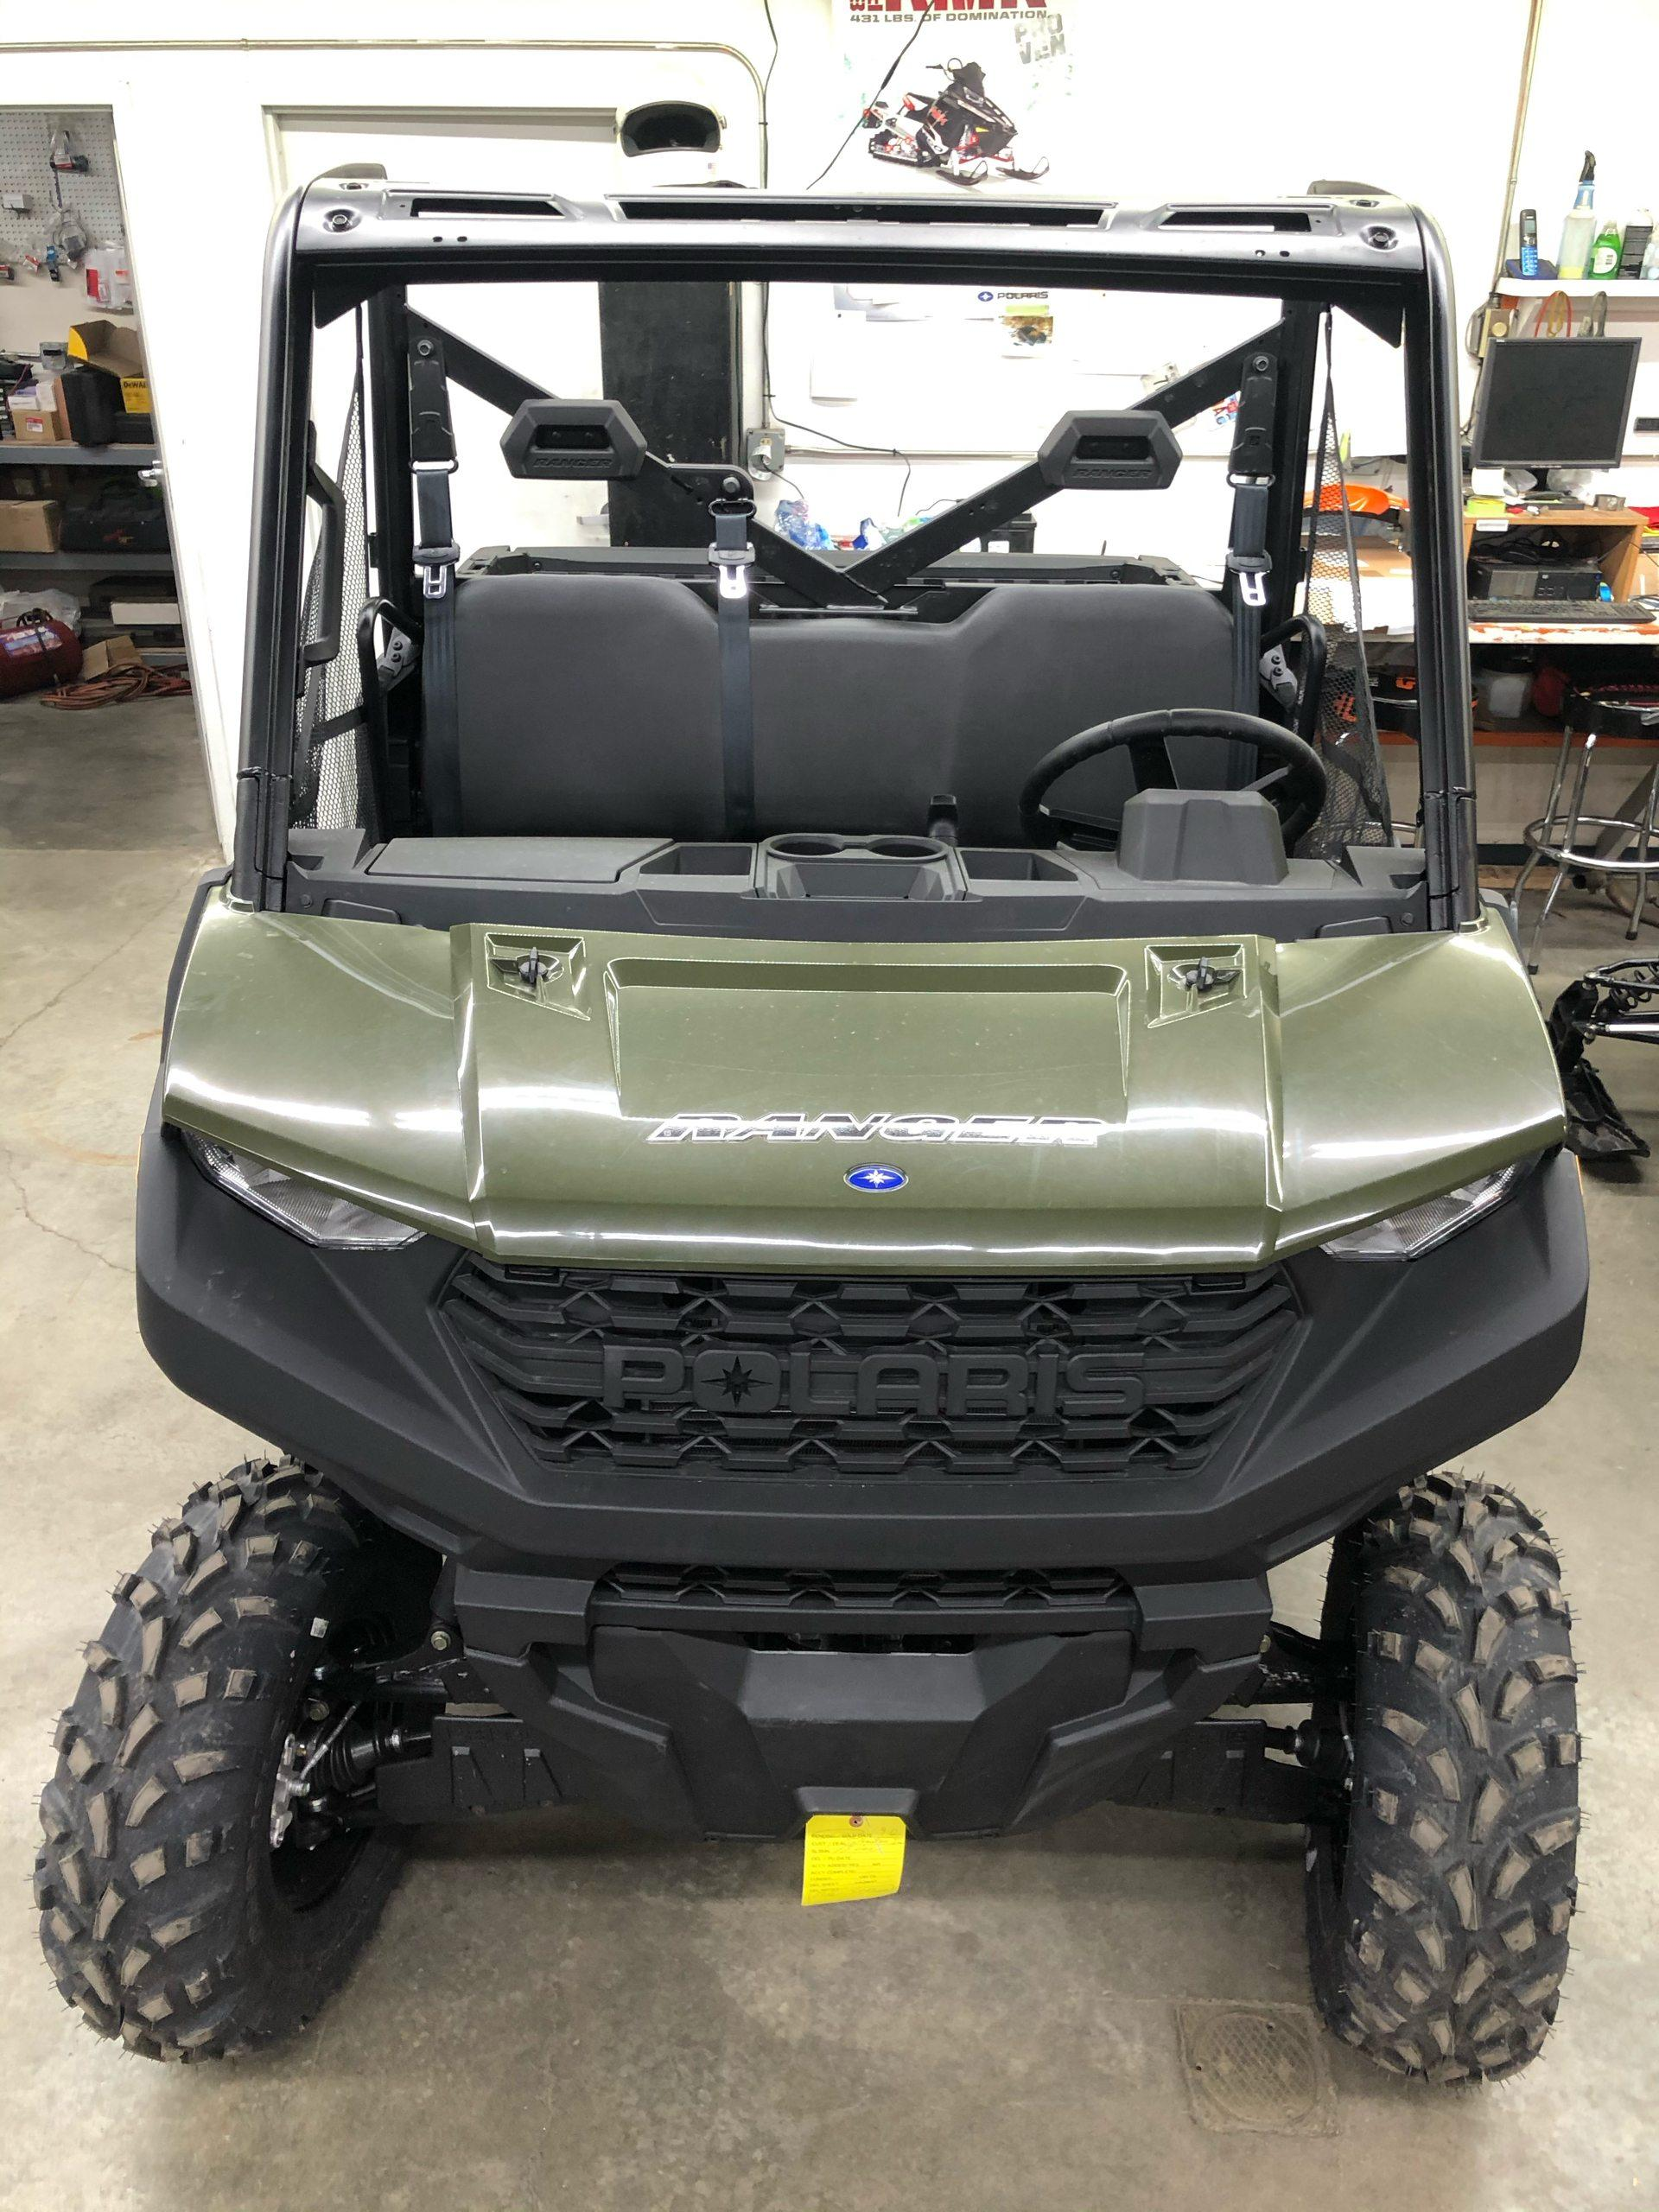 2020 Polaris Ranger 1000 in Fairbanks, Alaska - Photo 1